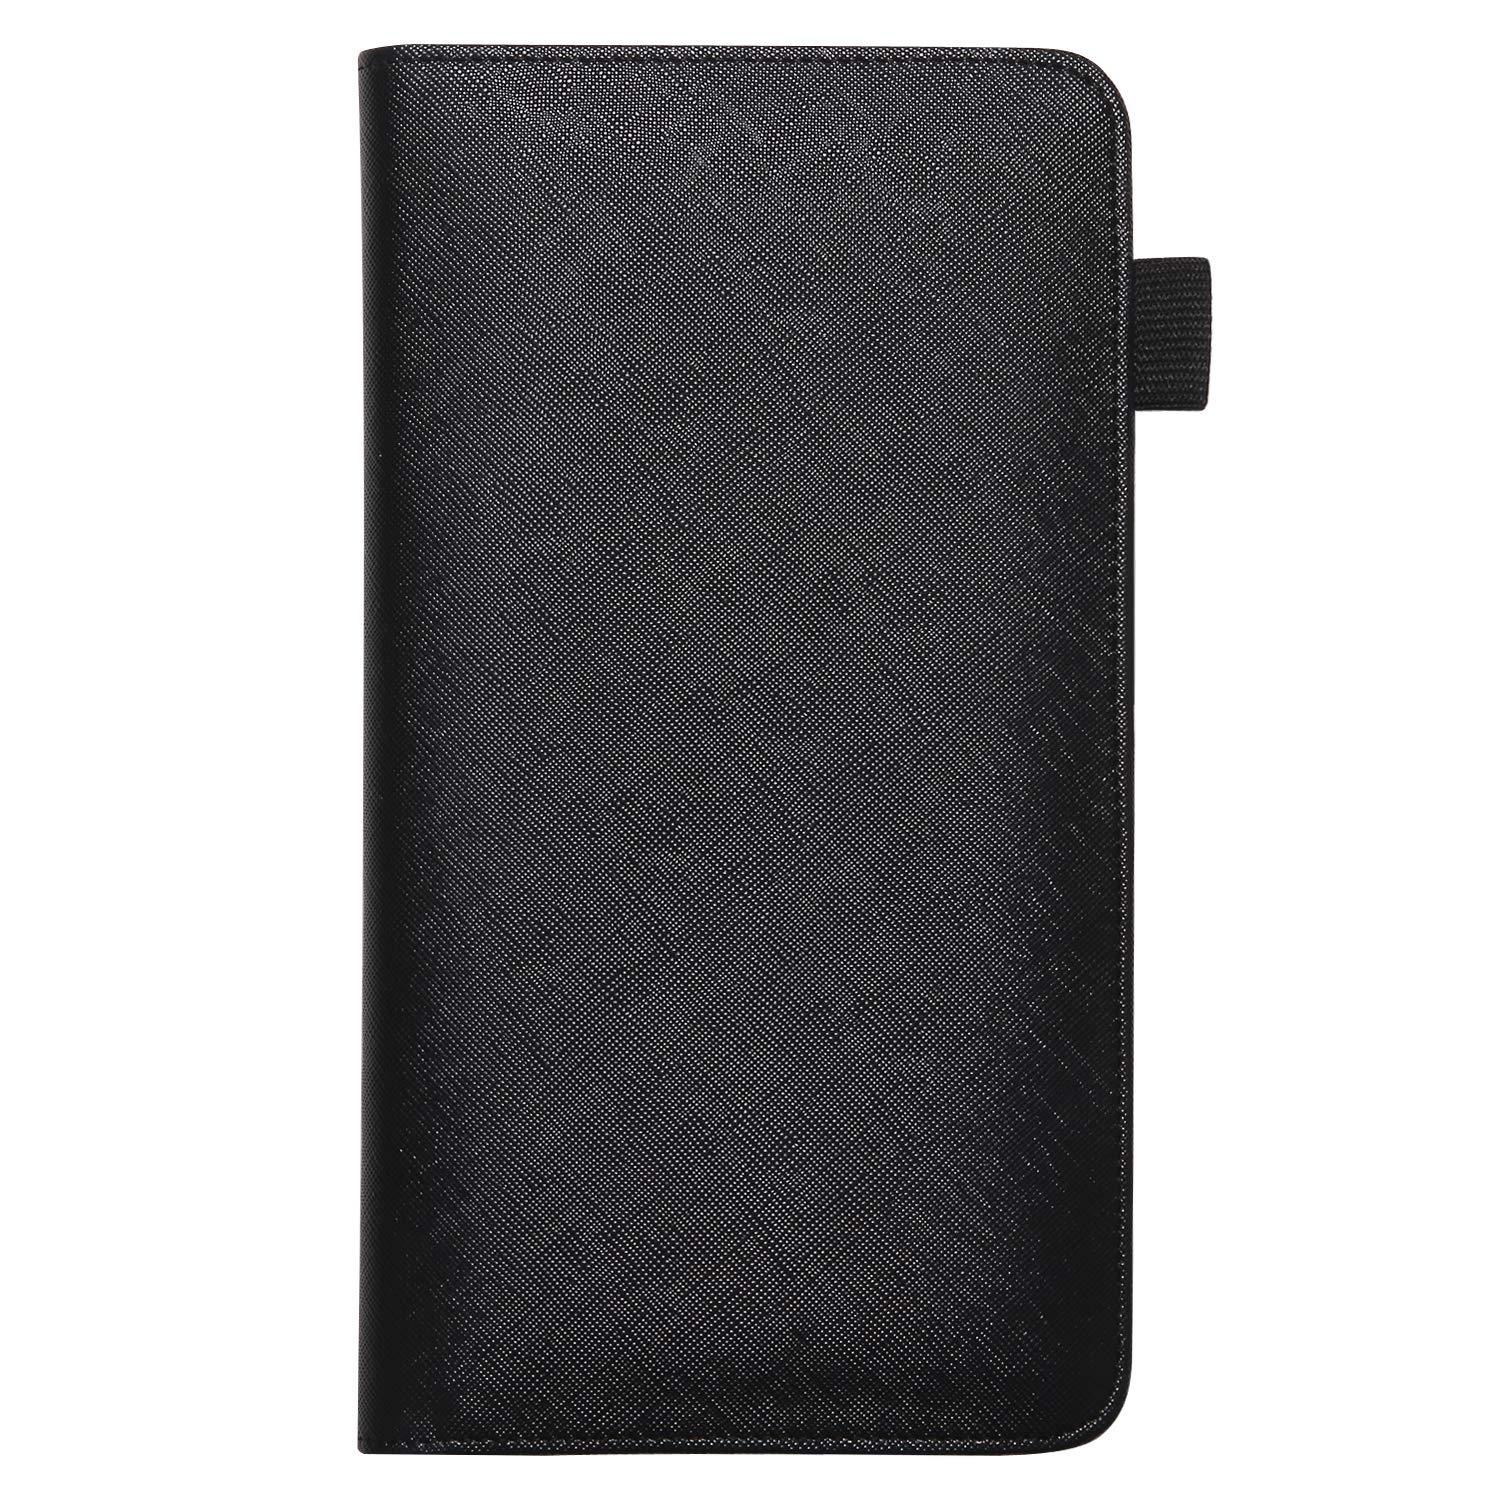 Black Mymazn 5 X 9 Mermaid Server Book for Waitress with Magnetic Closure Zipper Pocket and Pen Holder